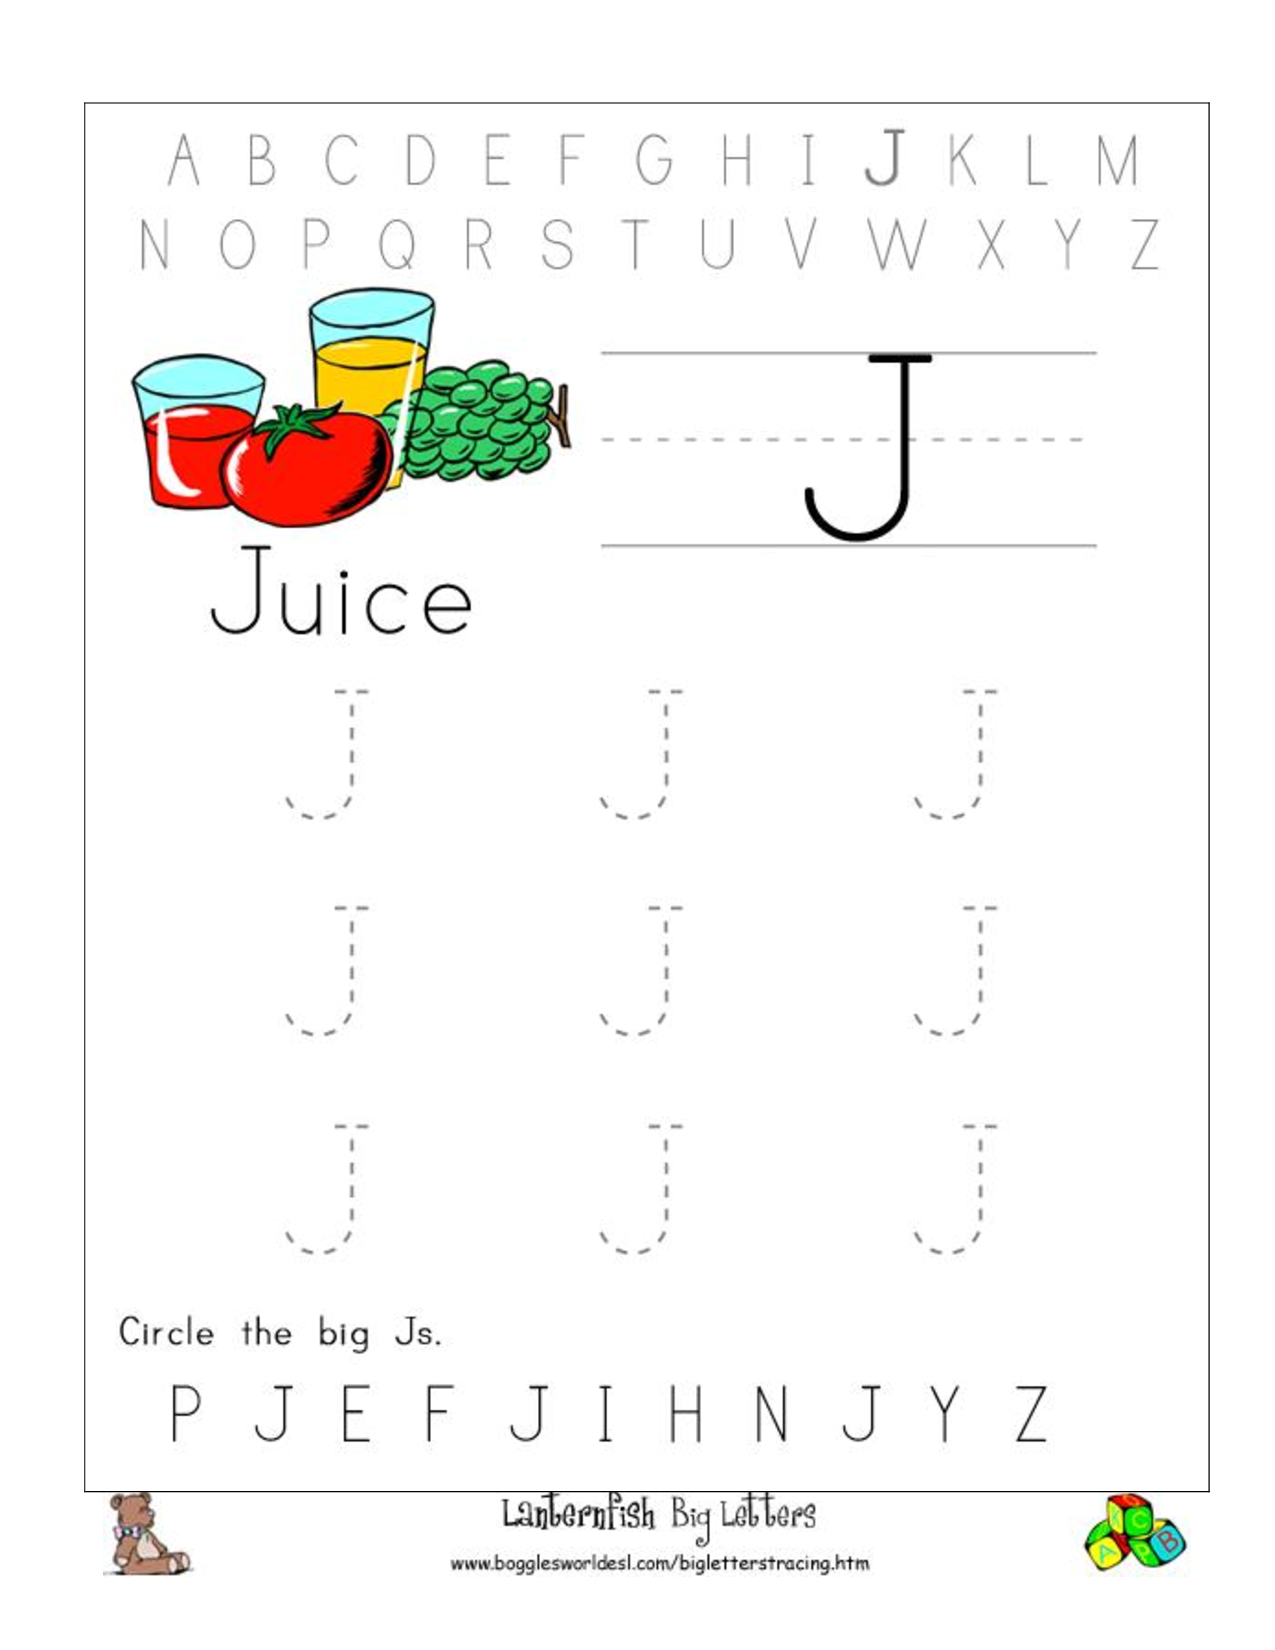 Alphabet Worksheets for Preschoolers | worksheets preschool ...